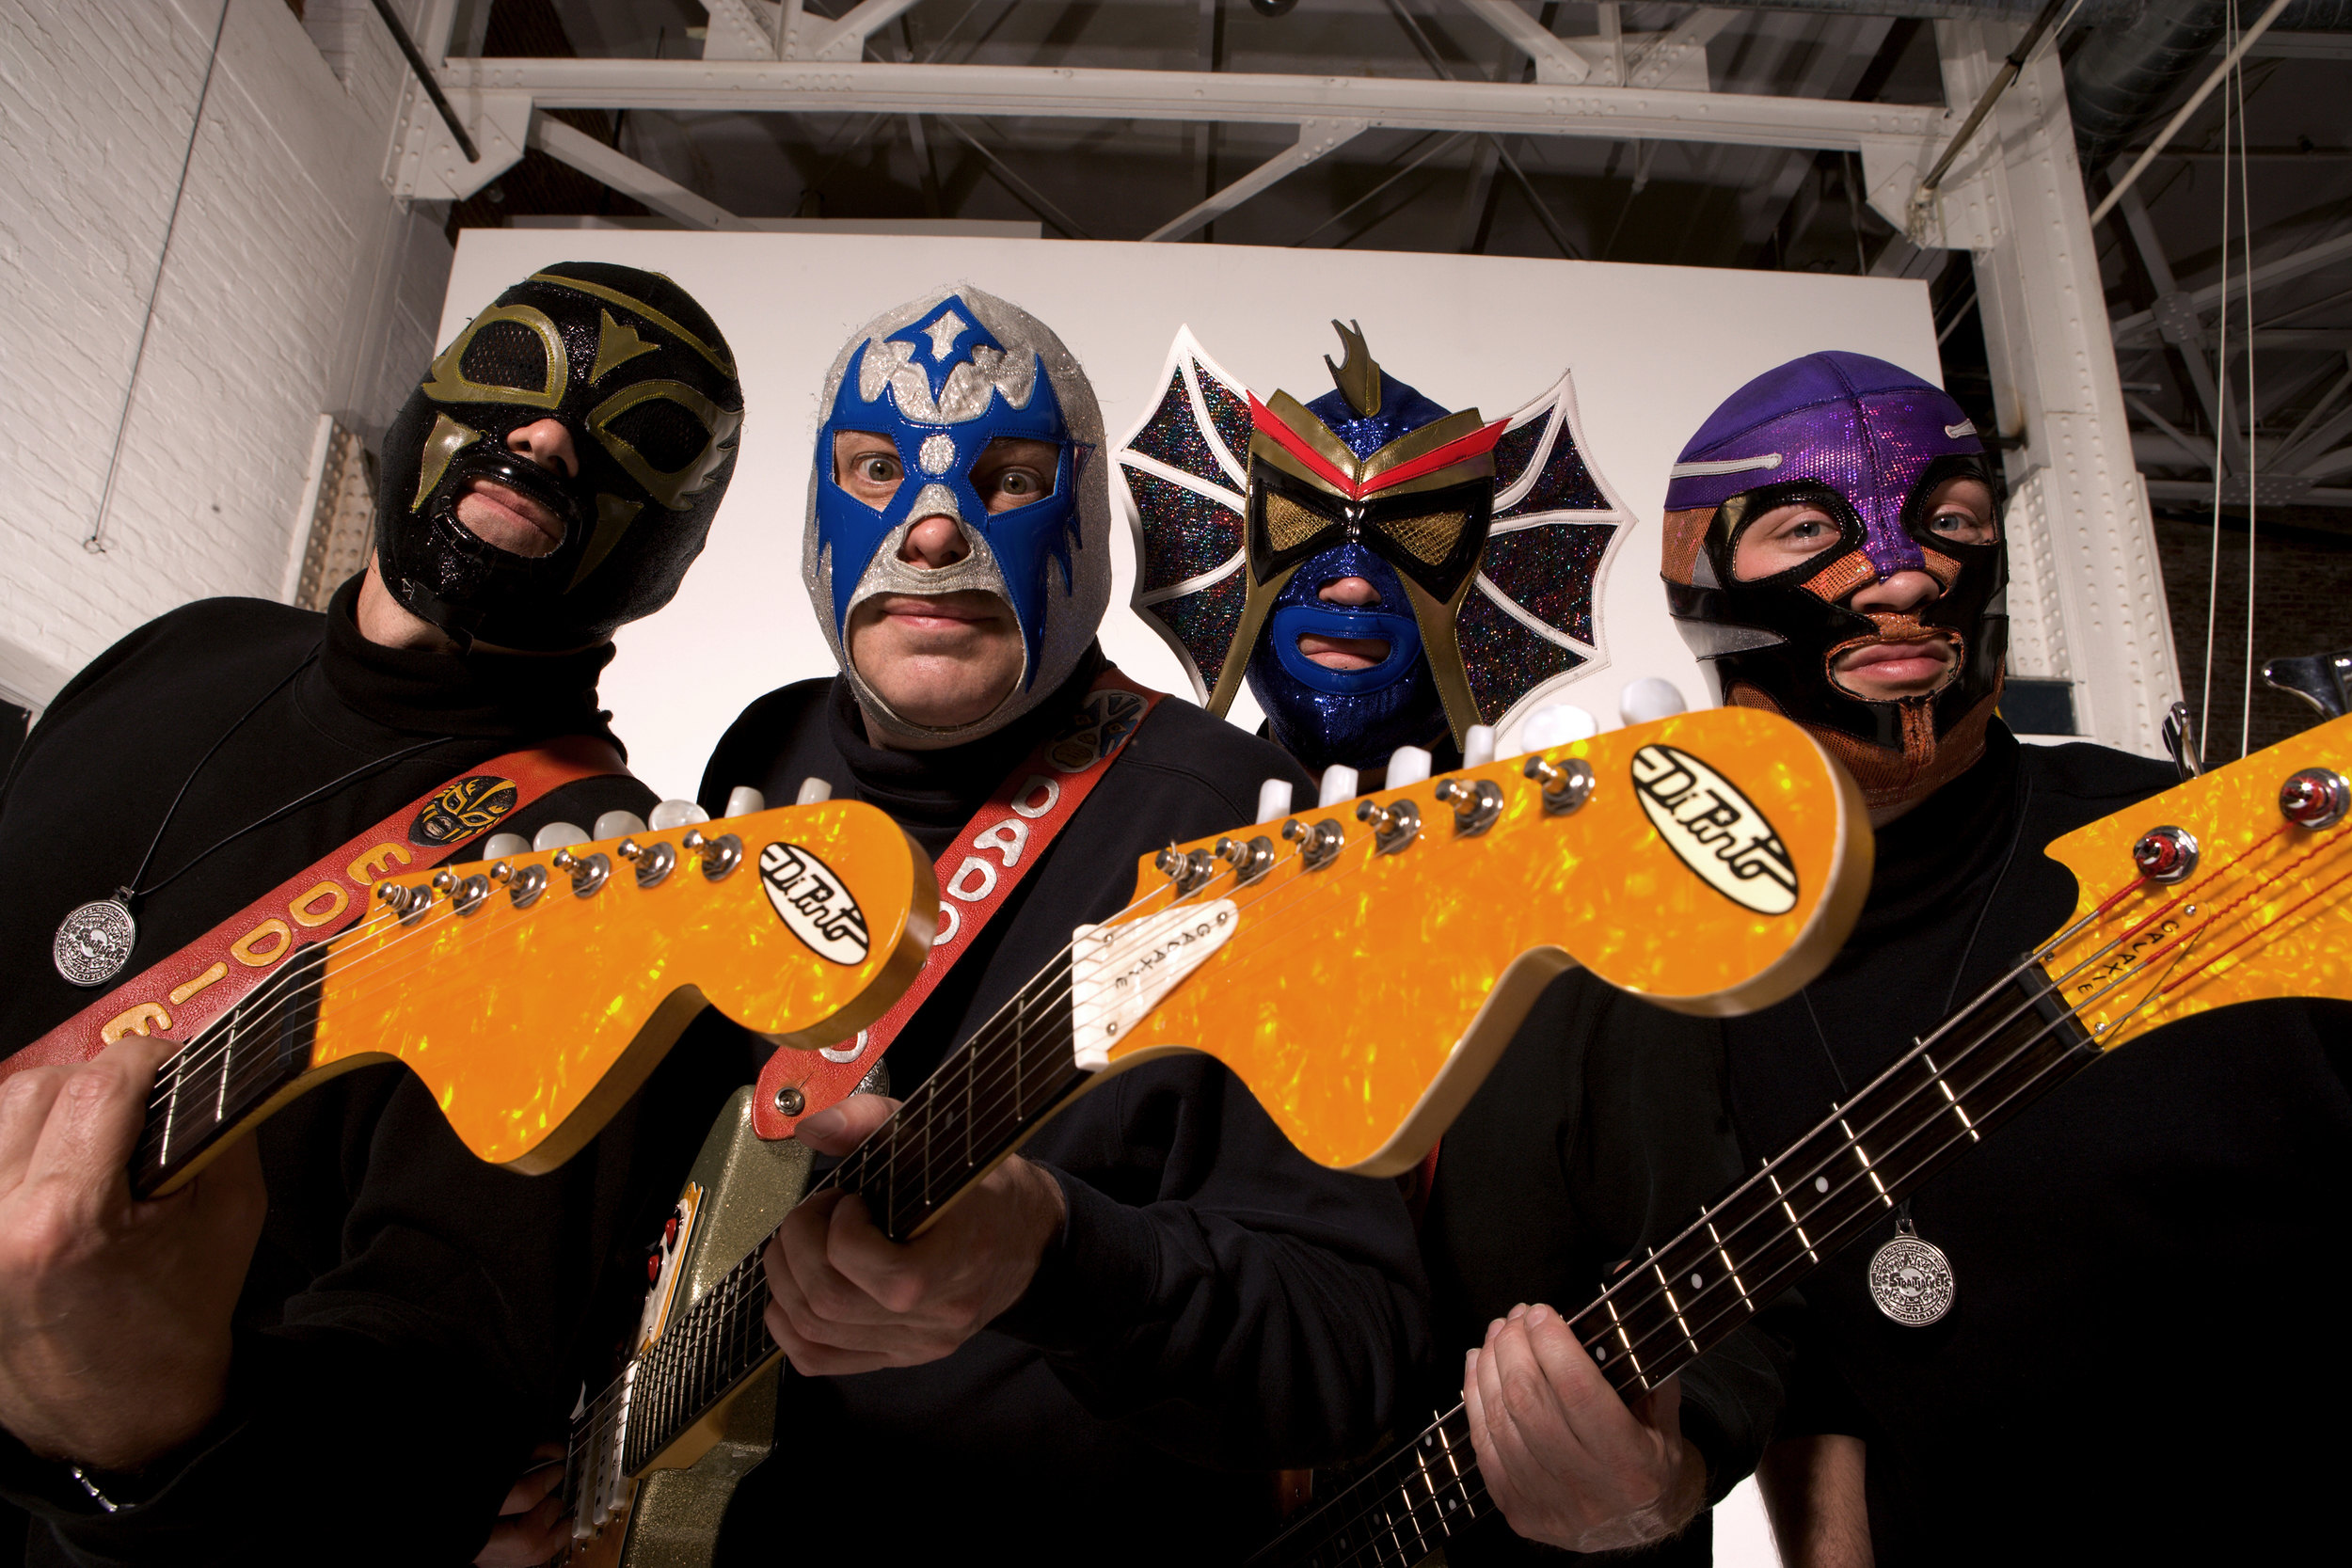 South Street, Los Straitjackets, Day of the dead, festival, parade